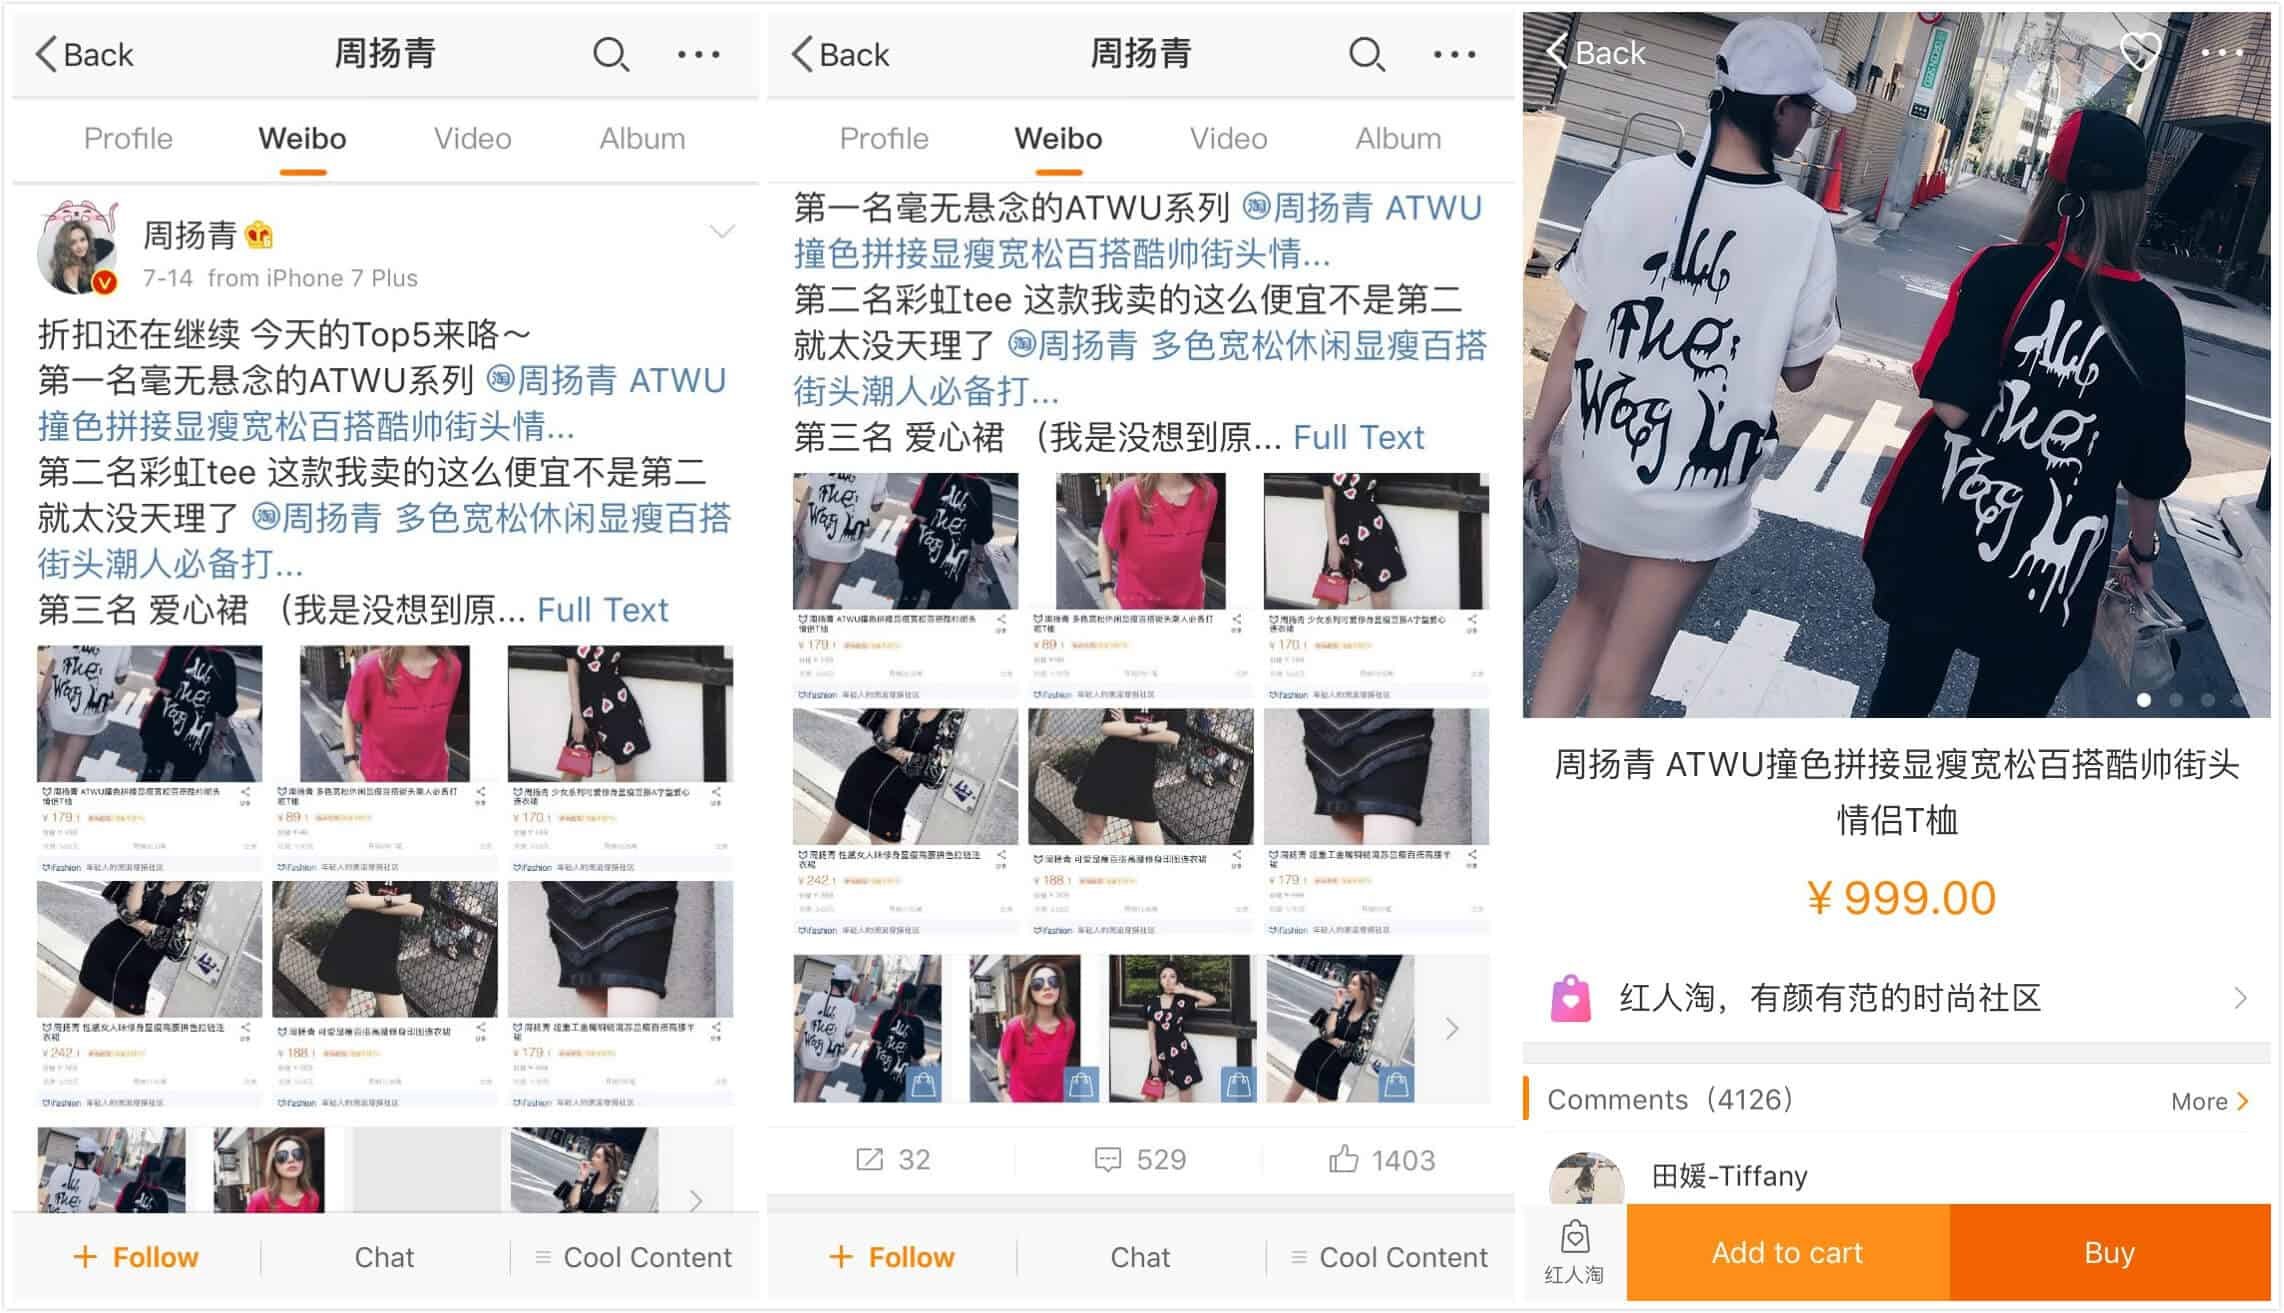 Weibo Window is an example of ecommerce and social media combined. Users can view product recommendations, make their purchase, and show it off all on one platform!